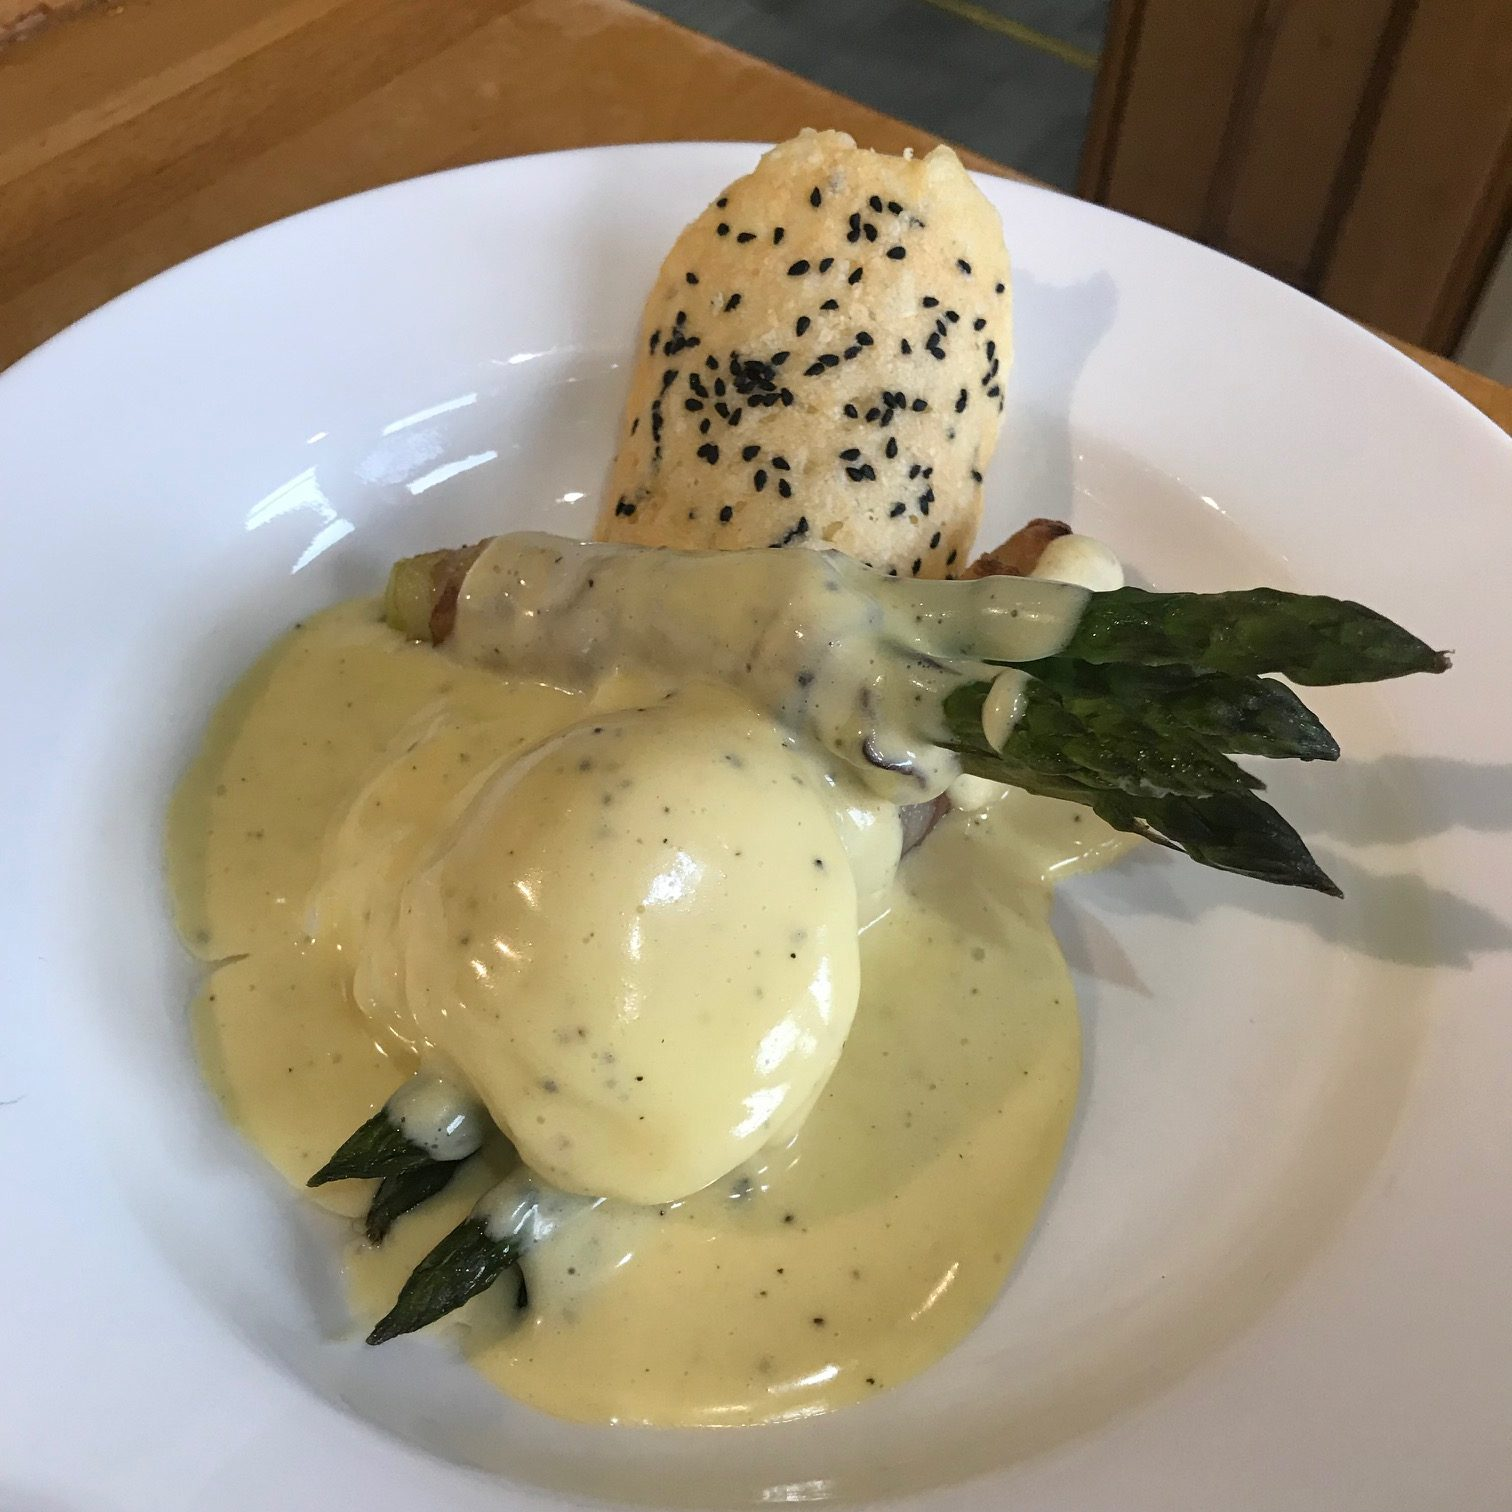 20190816 - Soft Poached Egg with Asparagus, Pancetta & Béarnaise Sauce